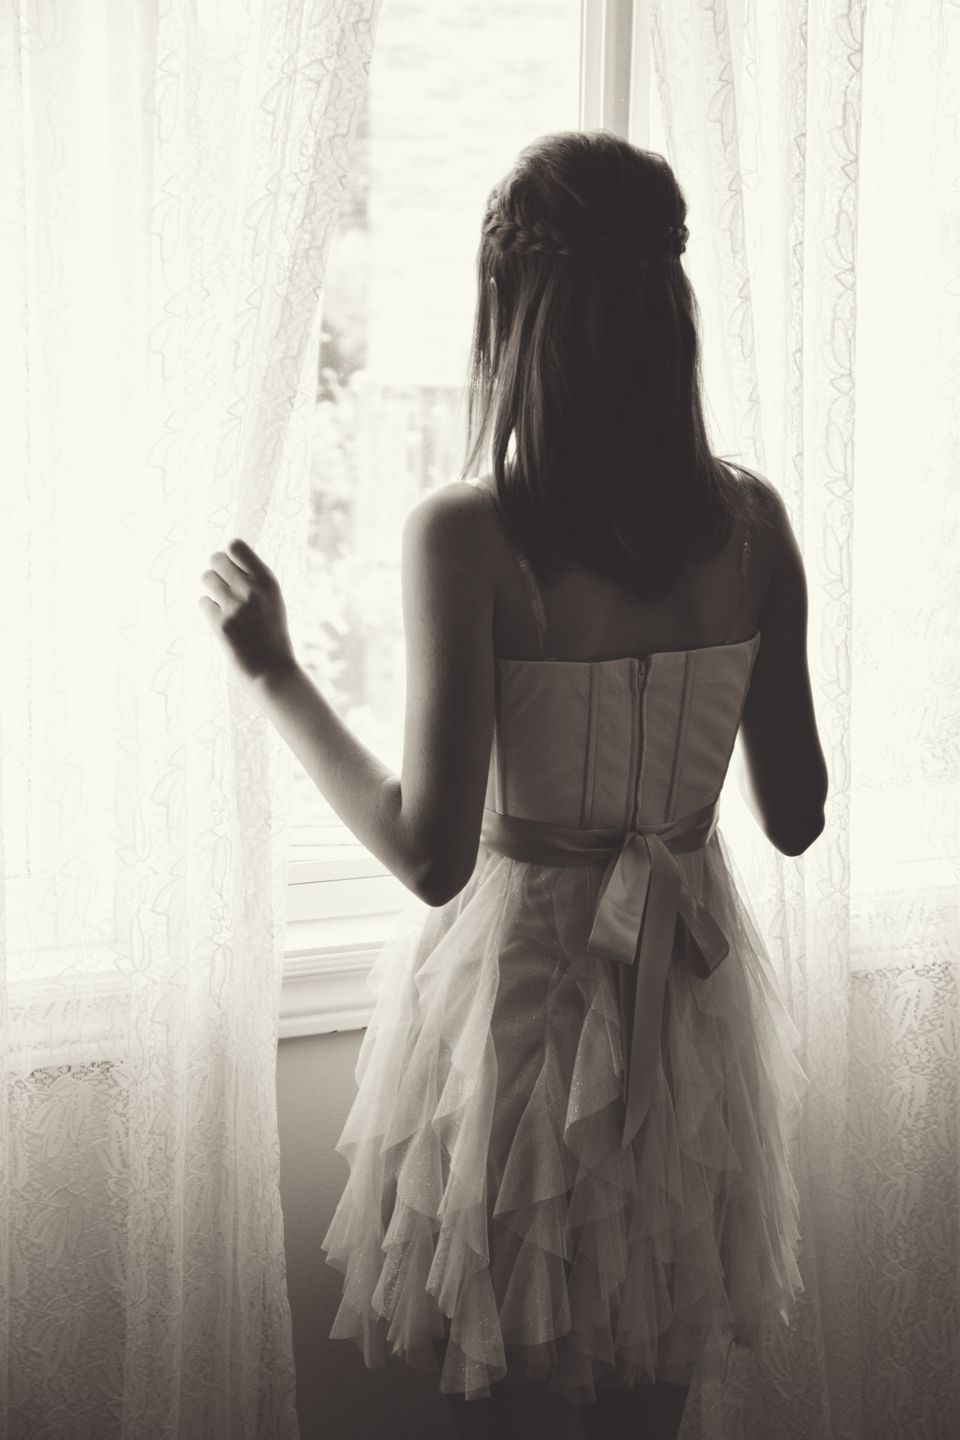 Teenage girl in graduation dress looking out of a window